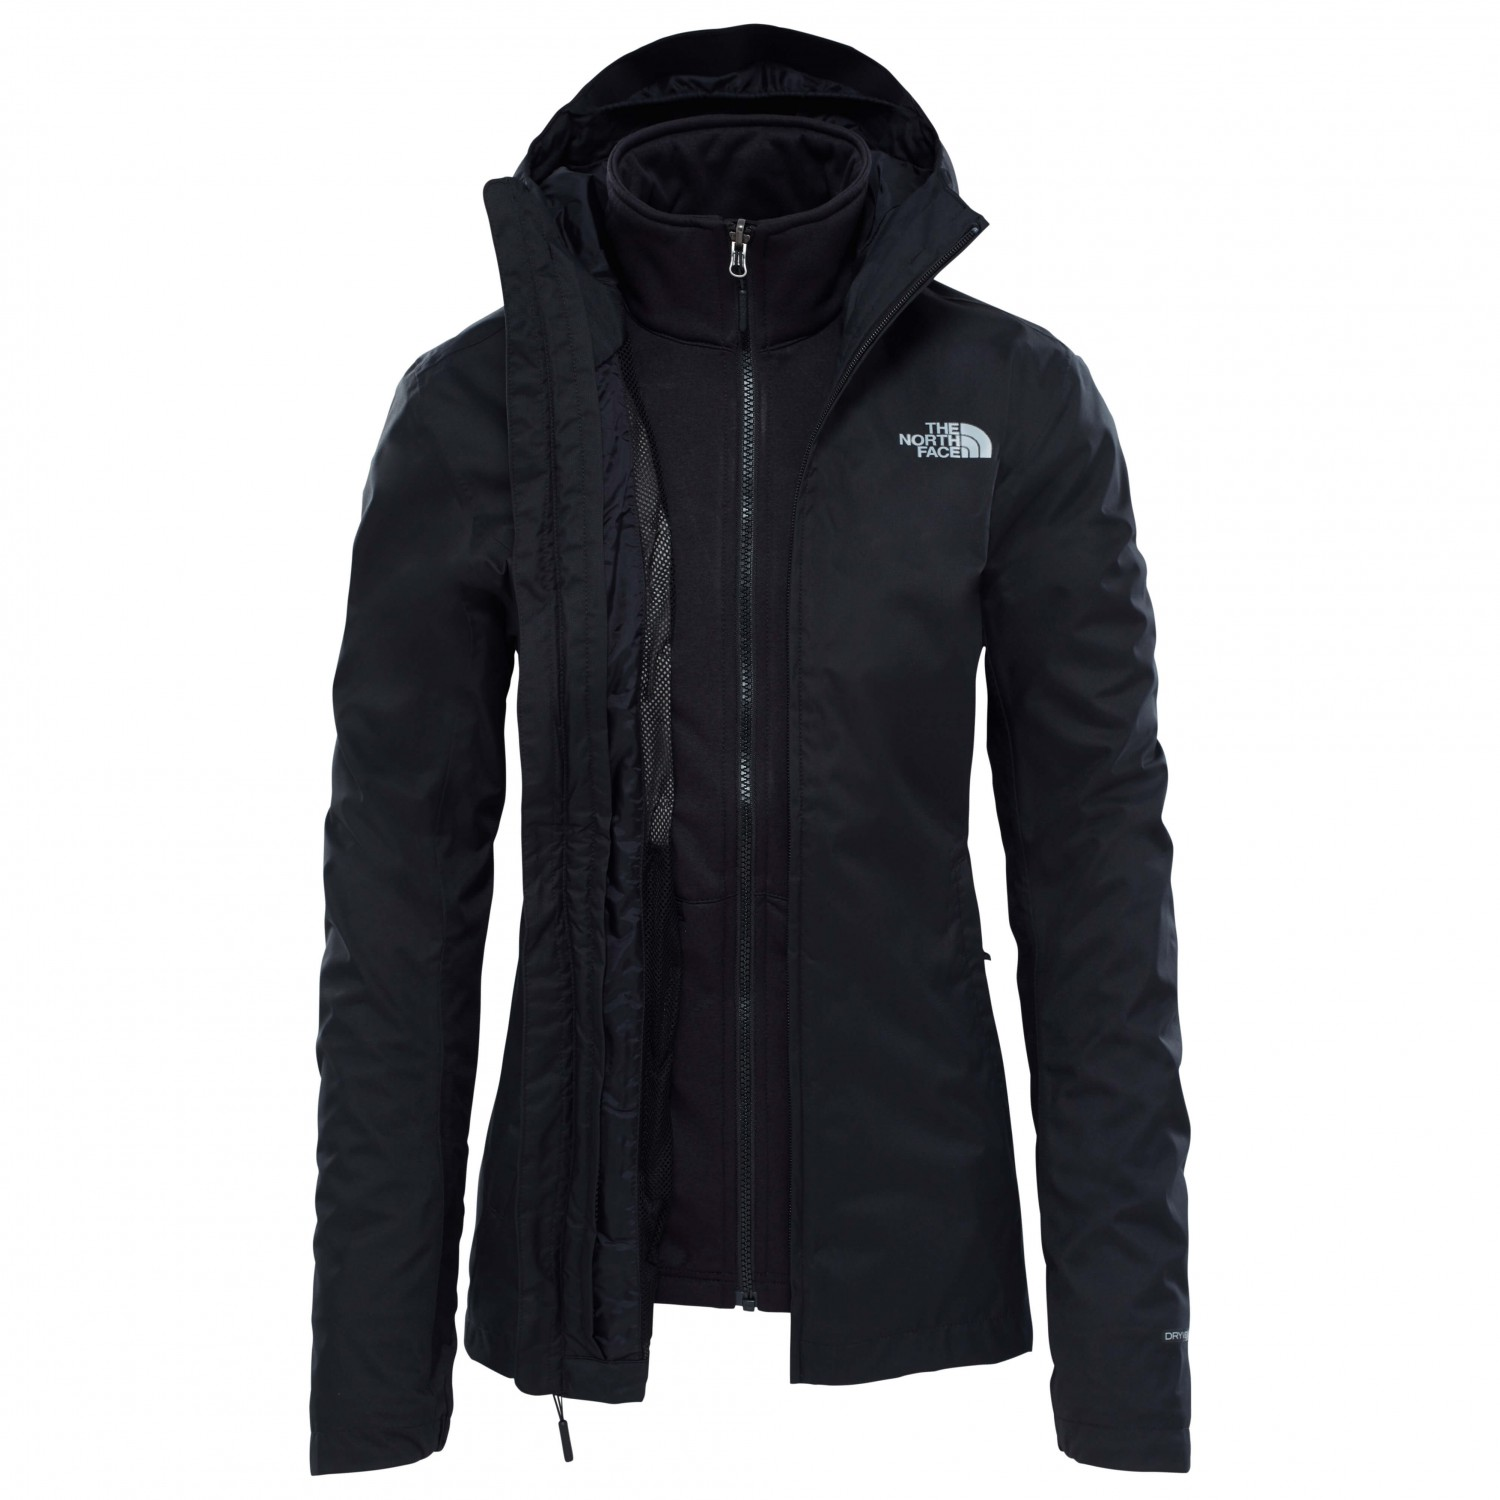 09379eeb1 The North Face - Women's Tanken Triclimate Jacket - 3-in-1 jacket - TNF  Black | XS